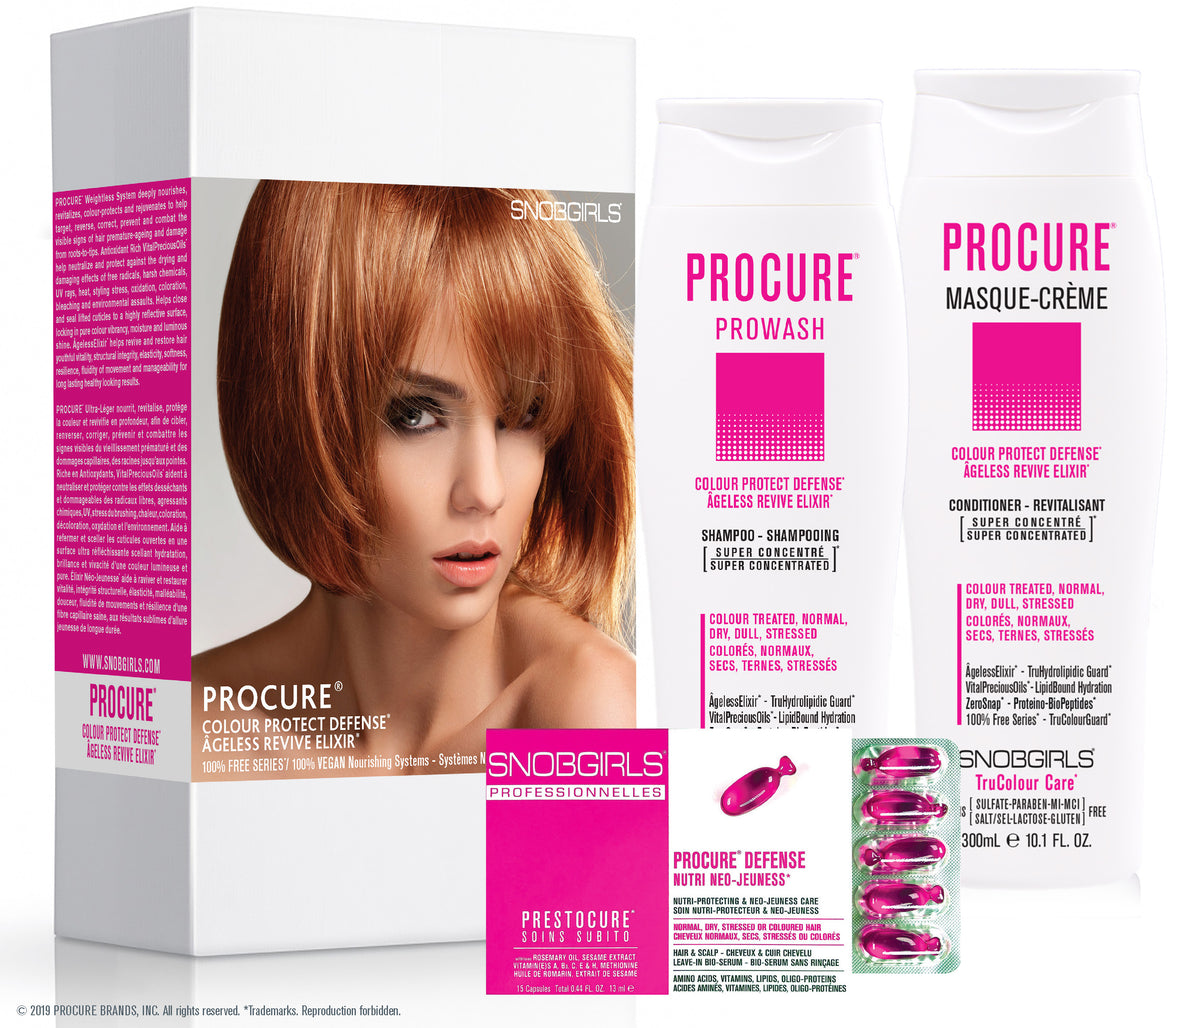 GIFT SETS- 3 X Trio PROCURE Colour Protect Defense + Detoxcure Prowash Liter - SNOBGIRLS.com